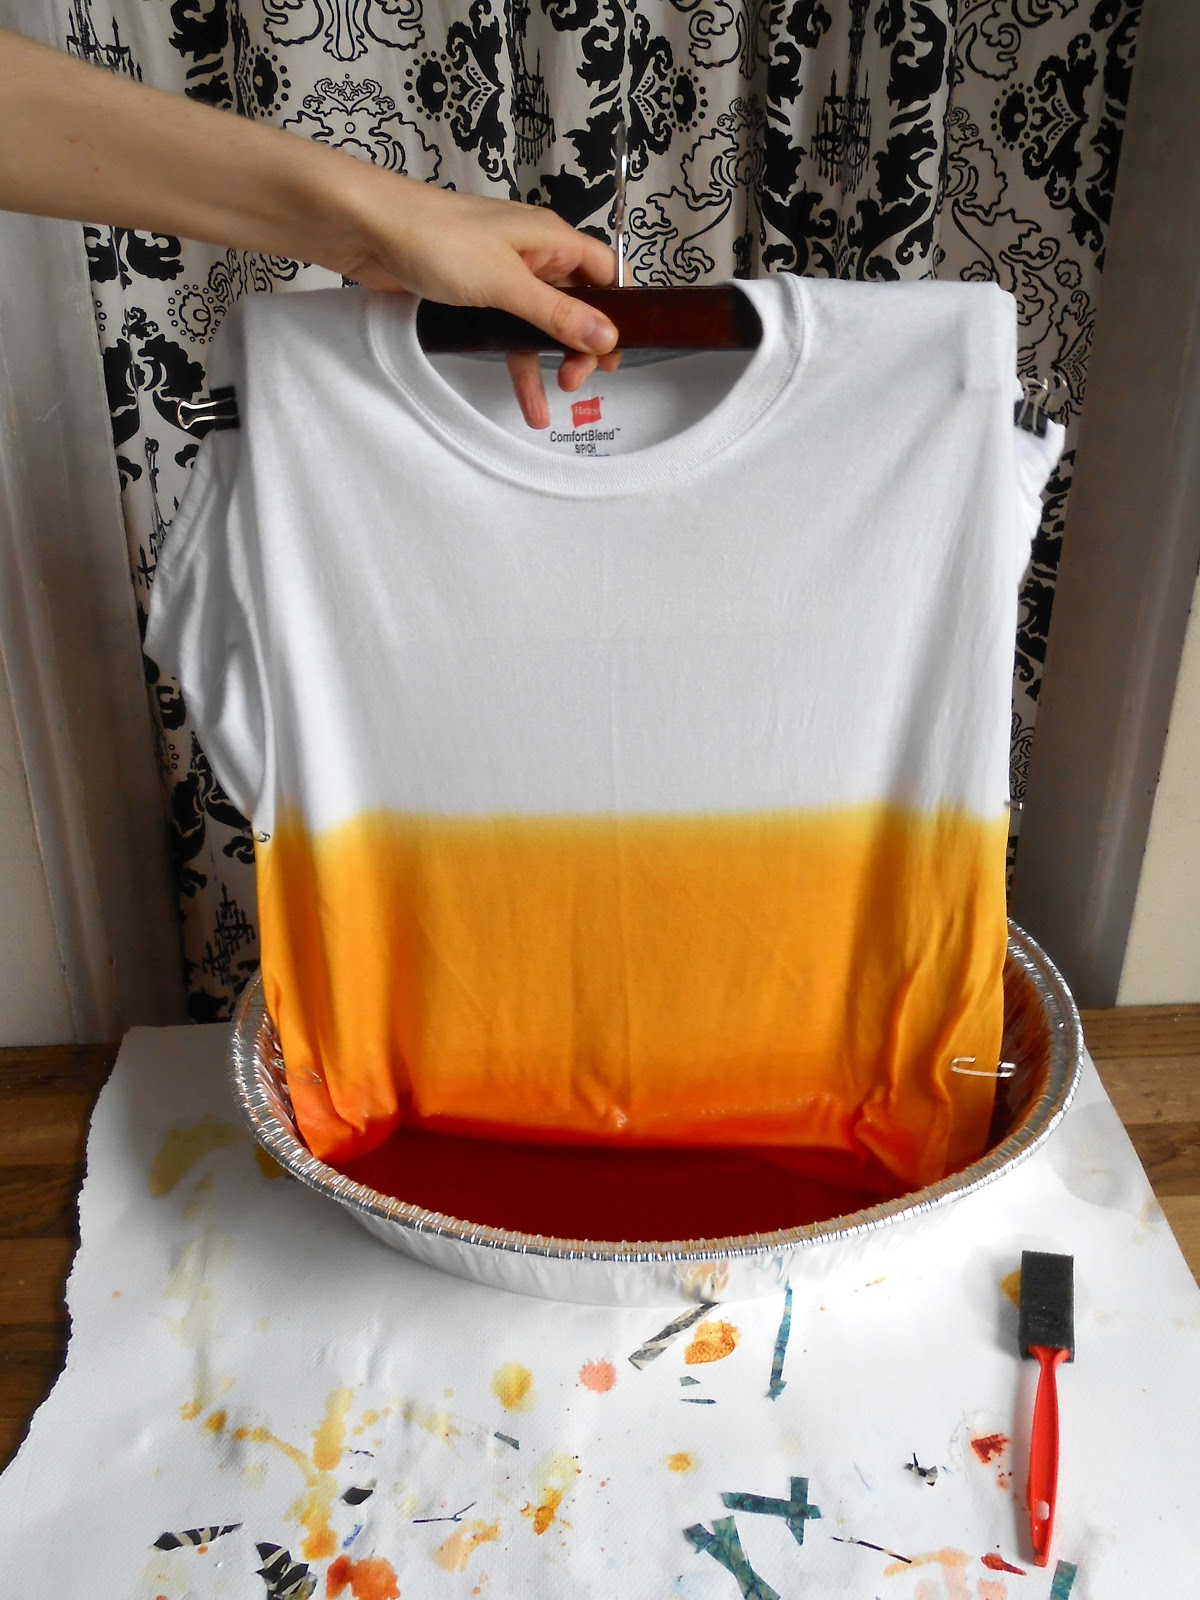 how to stop dye coming out of clothes